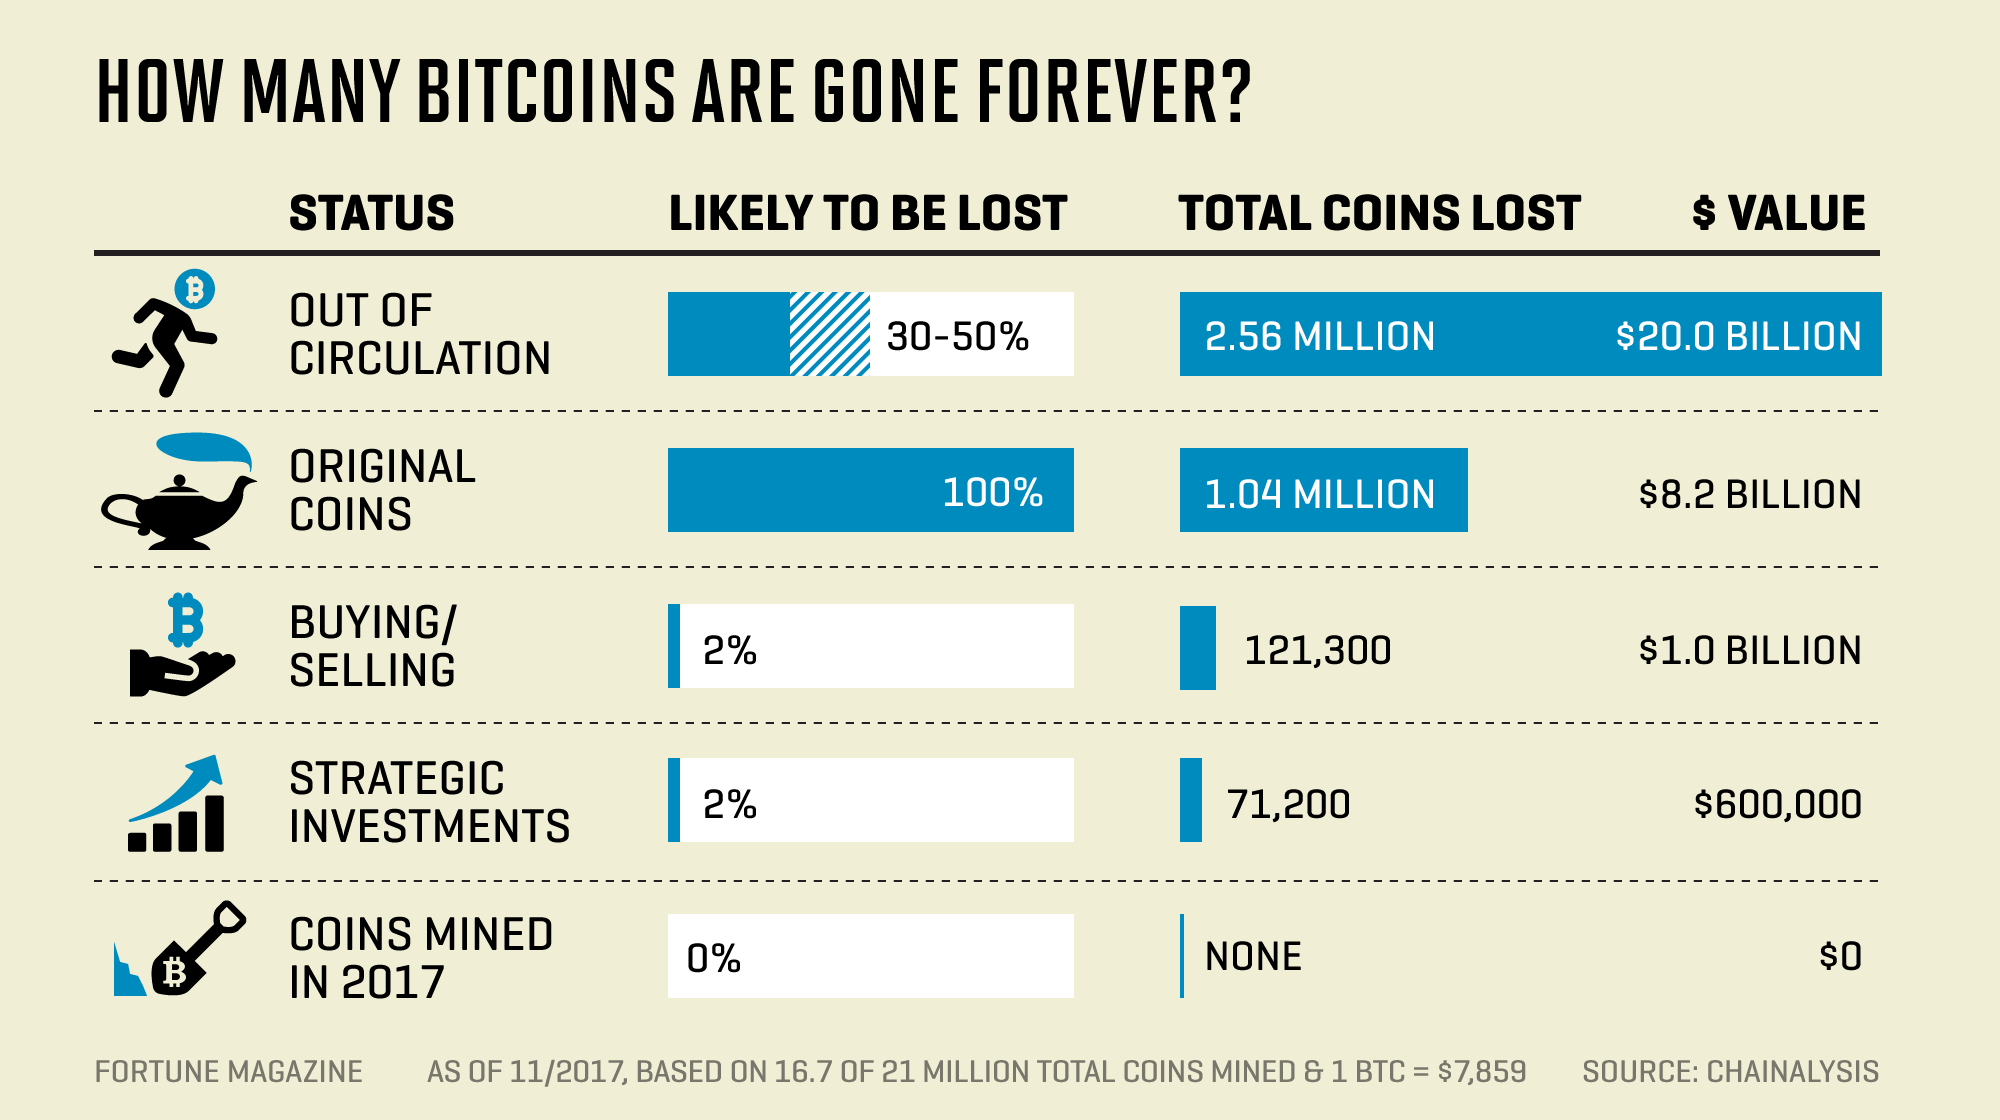 4 Million Bitcoins Gone Forever Study